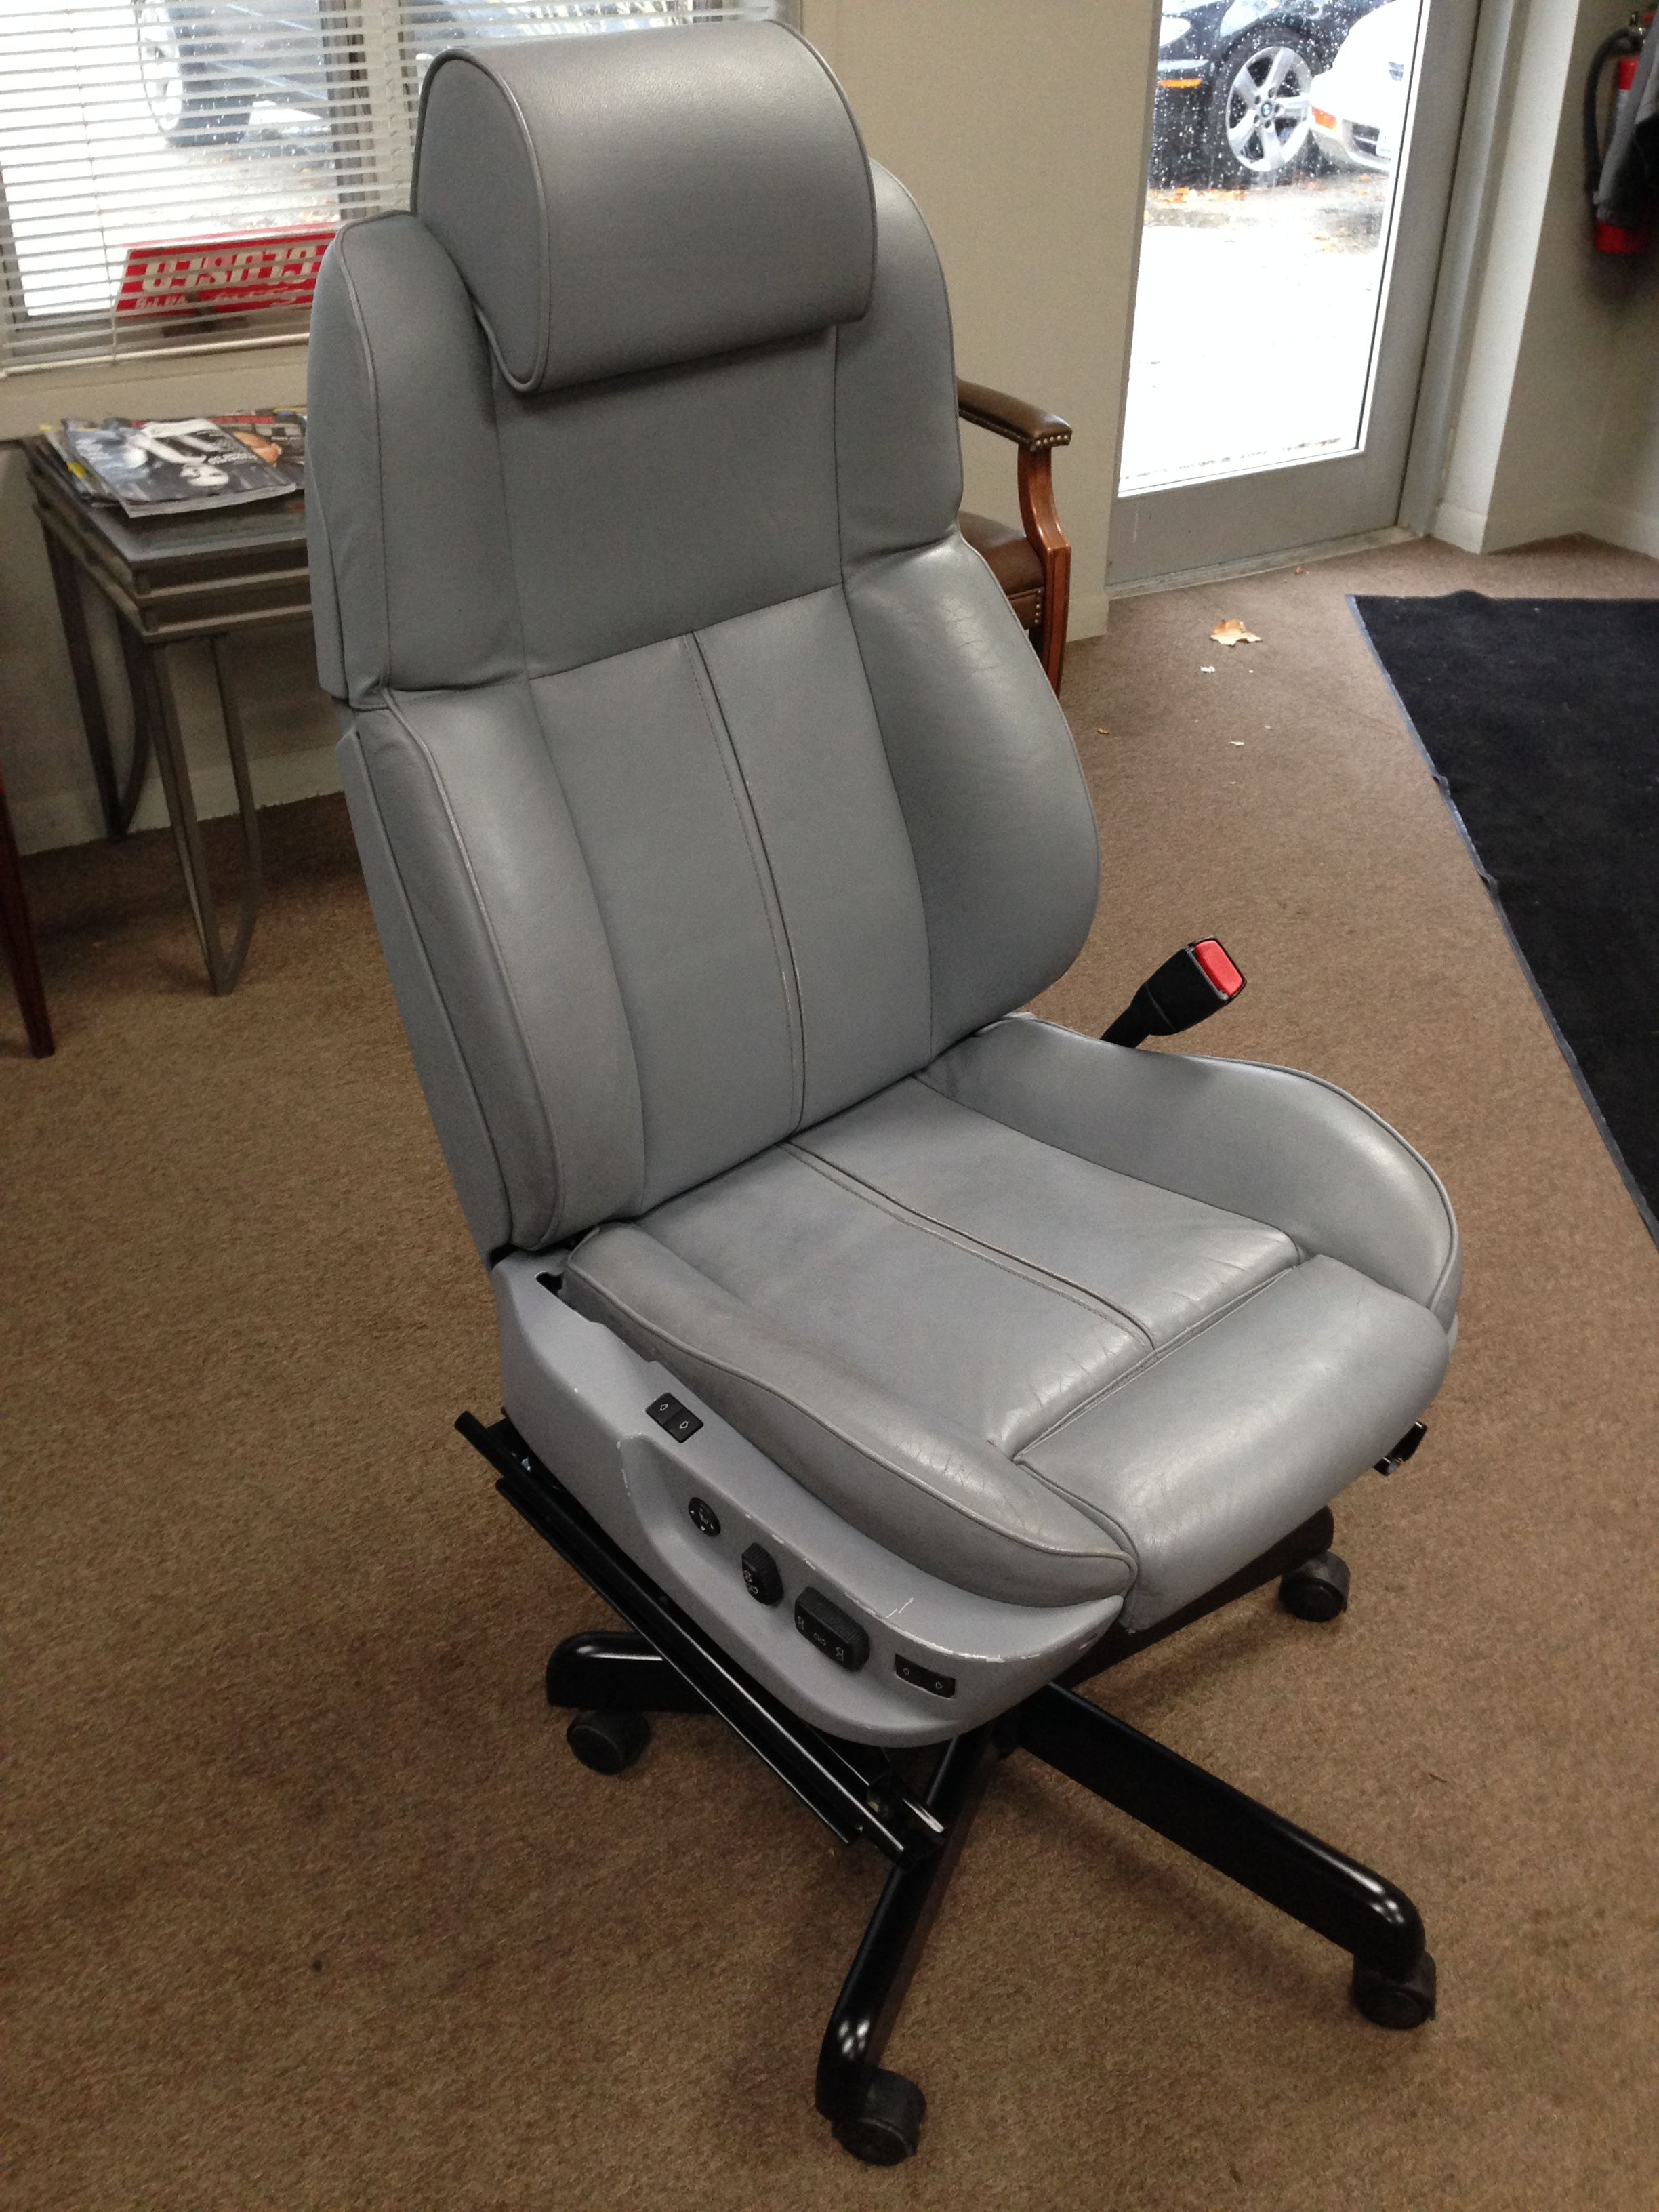 Office Chair Made From BMW 740i Front Seat Space Saving Desk Car Furniture